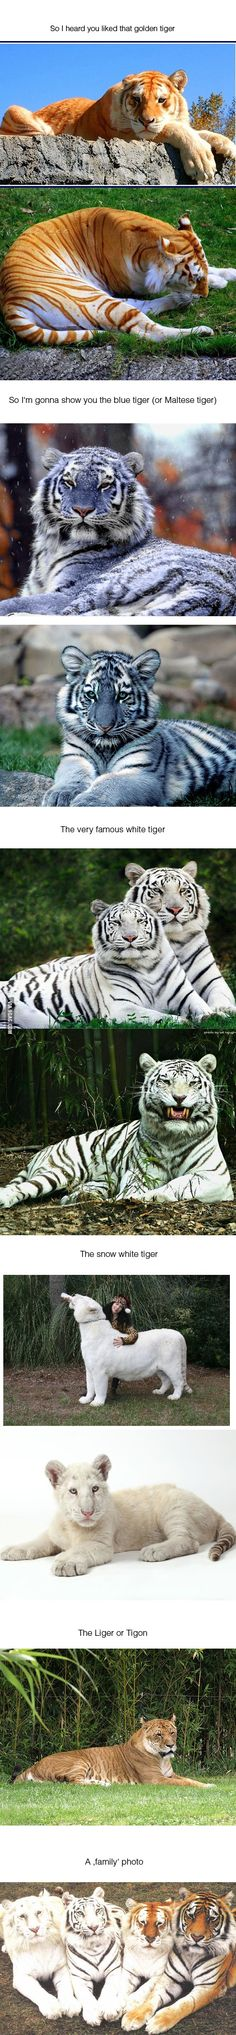 I would love to see a Maltese tiger